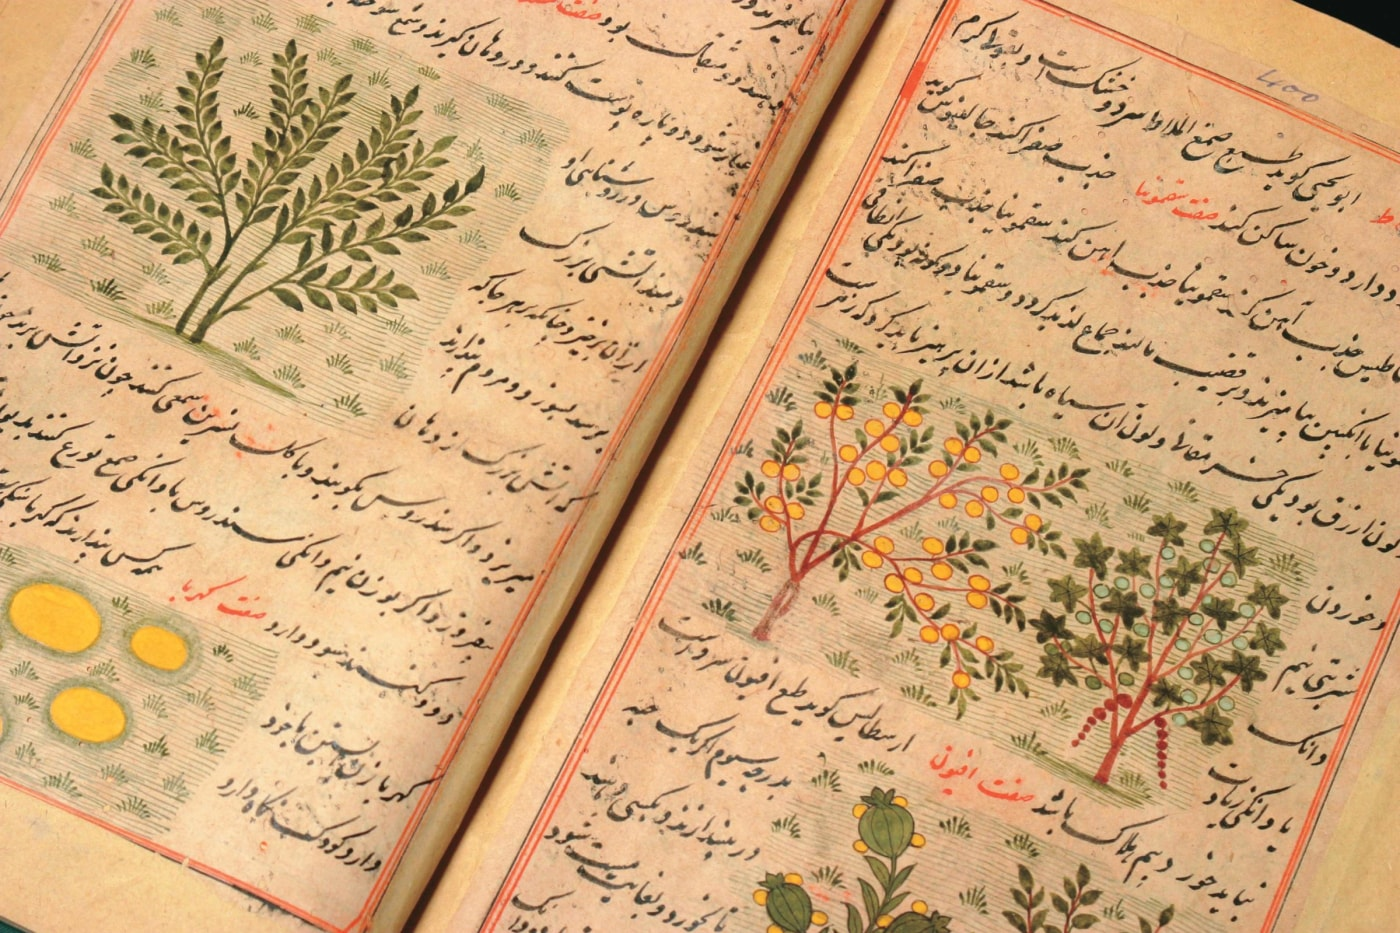 The 11th-century Persian manuscriptFarah namahwas also known asAjayib al-dunya(Wonders of the World). Multicolored illustrations of animals, birds, plants, stones and humans adorn the text.